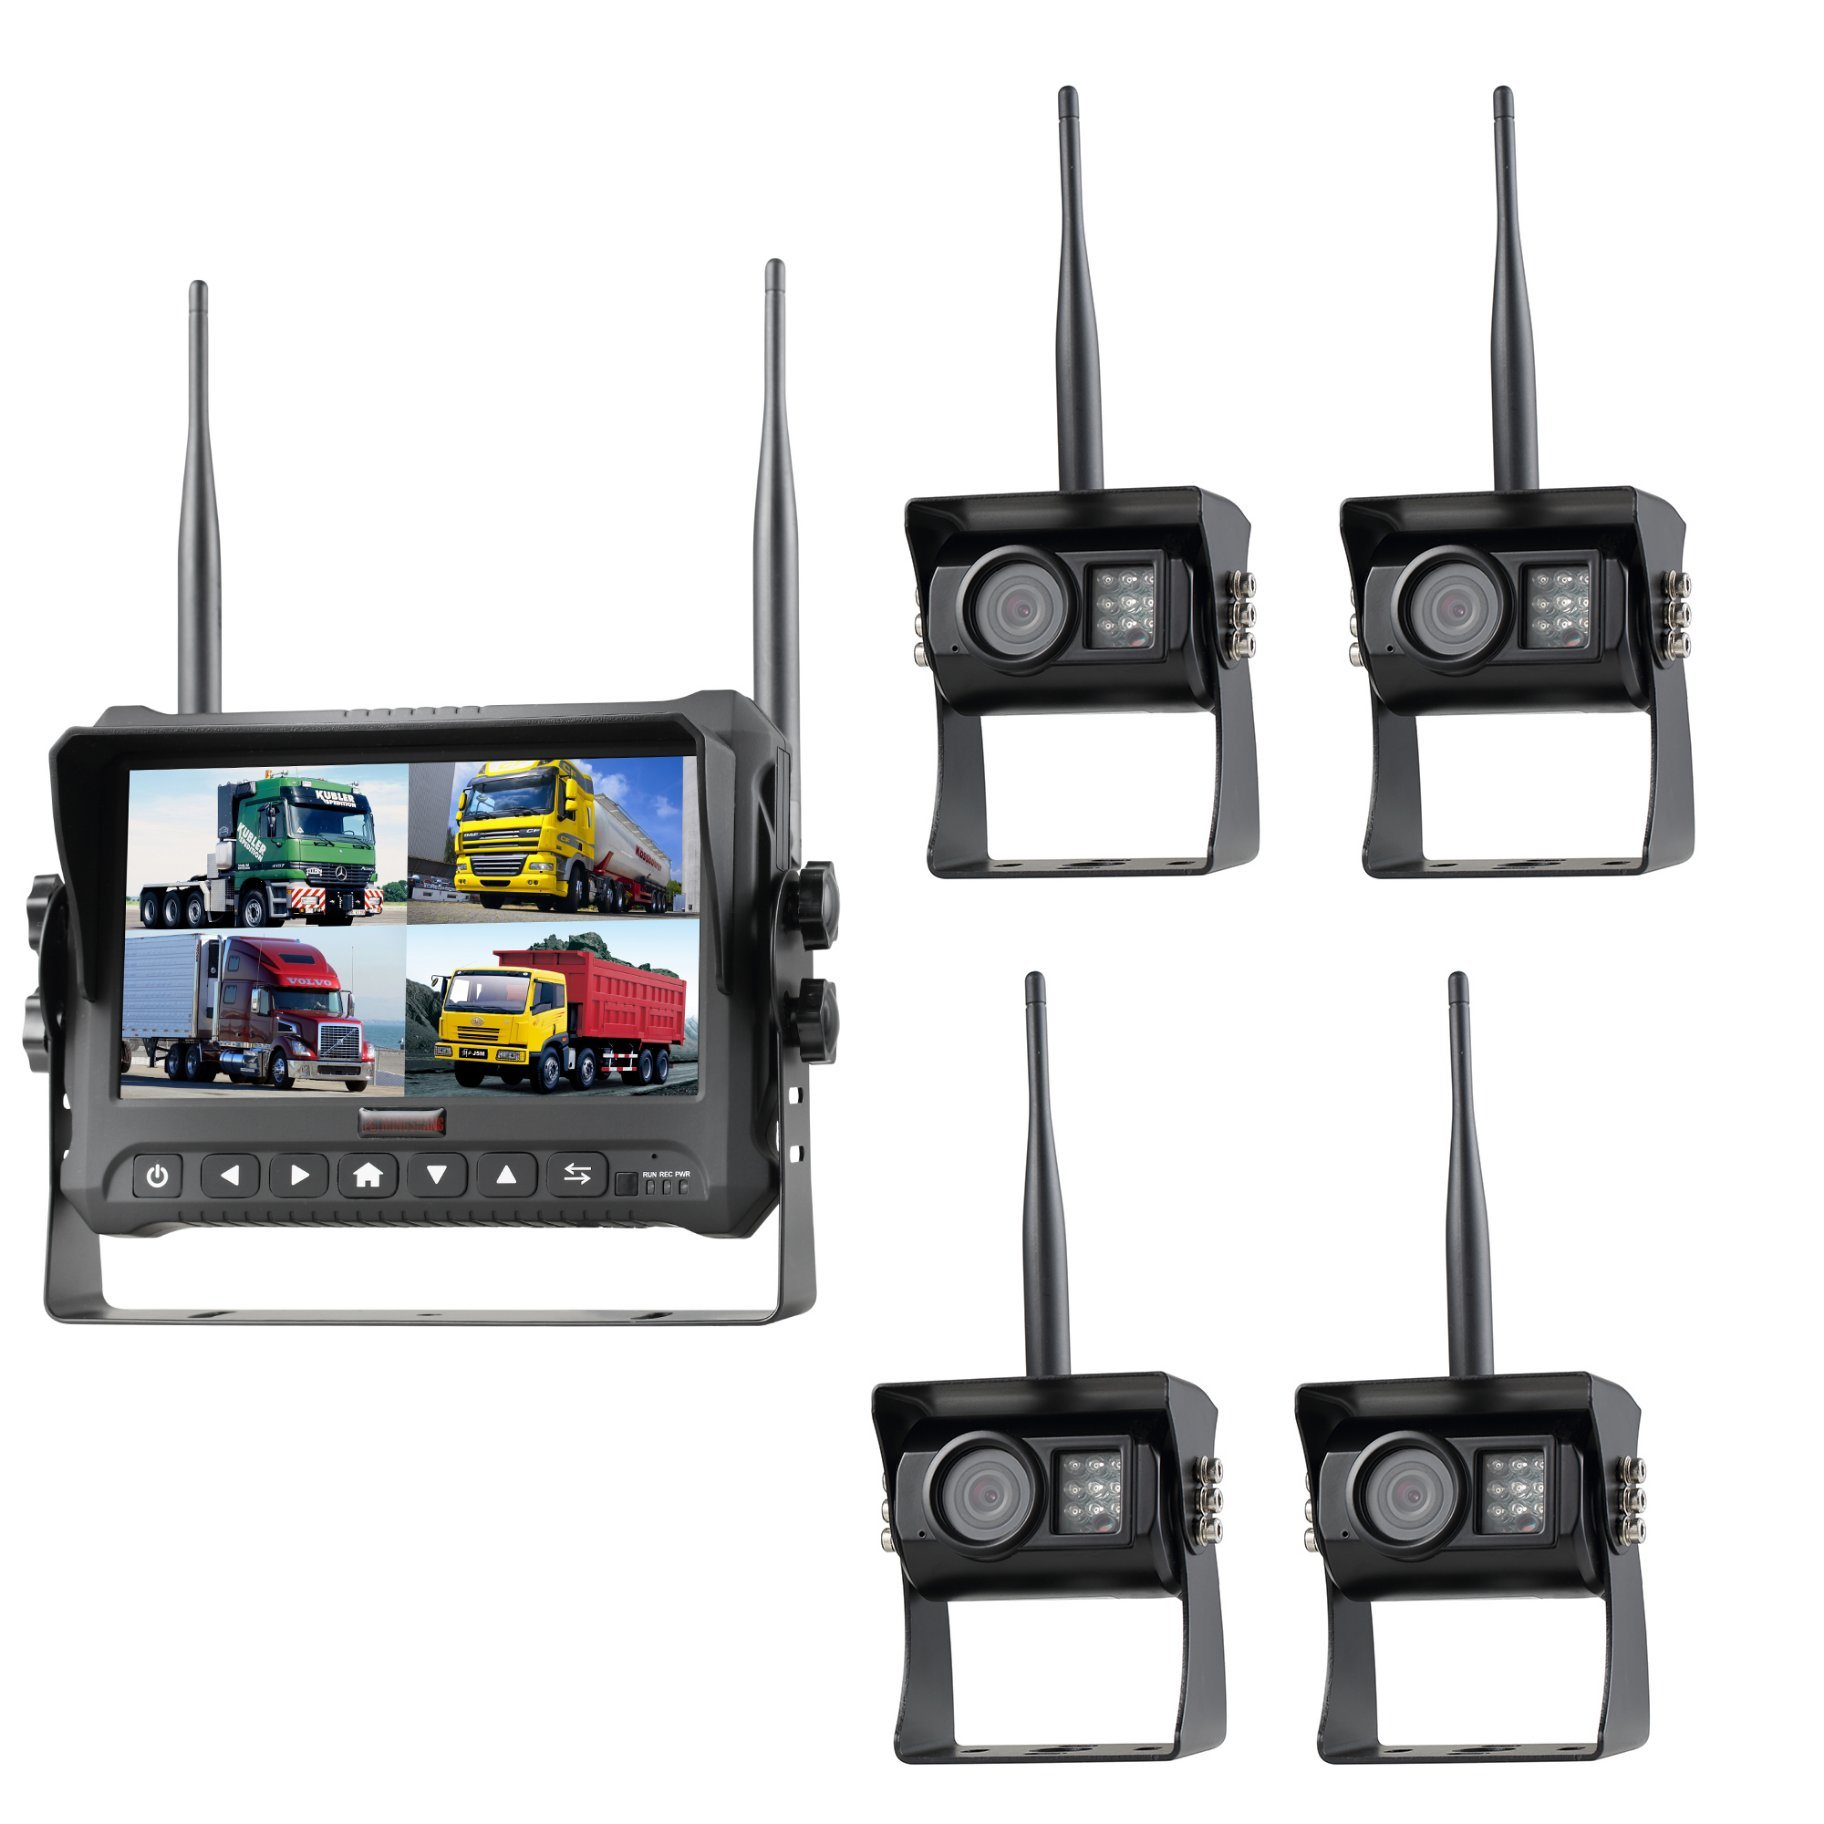 7inch Digital Wireless Recording Rear View System